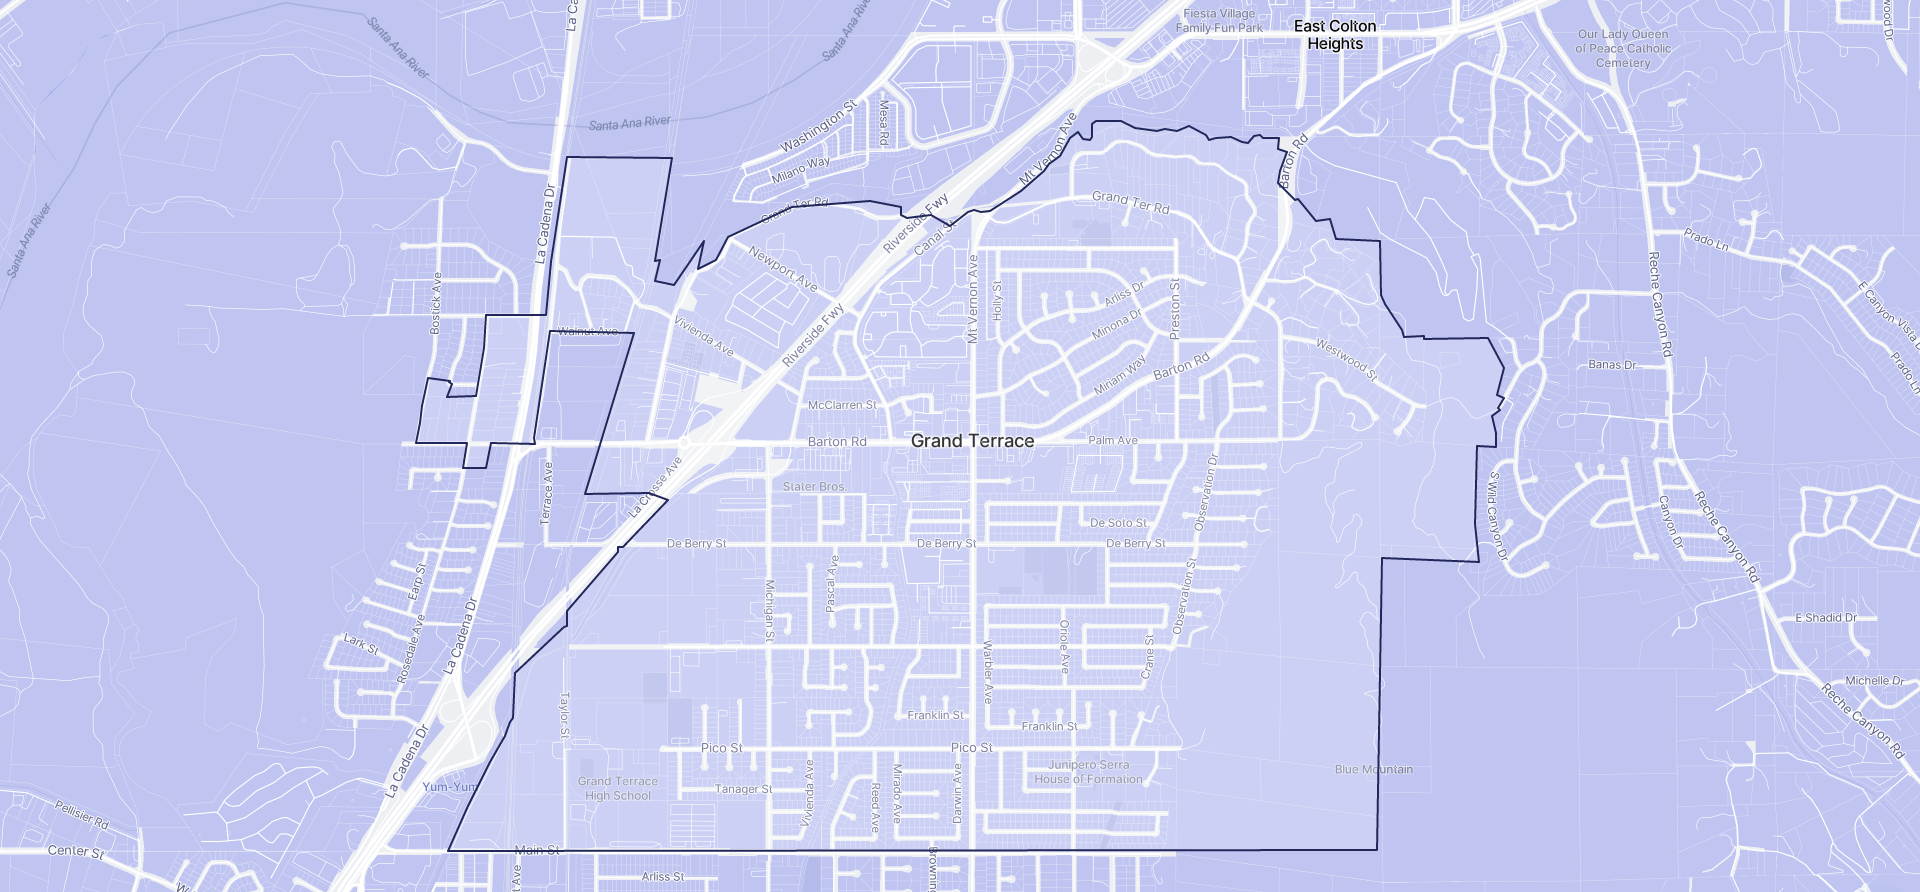 Image of Grand Terrace boundaries on a map.